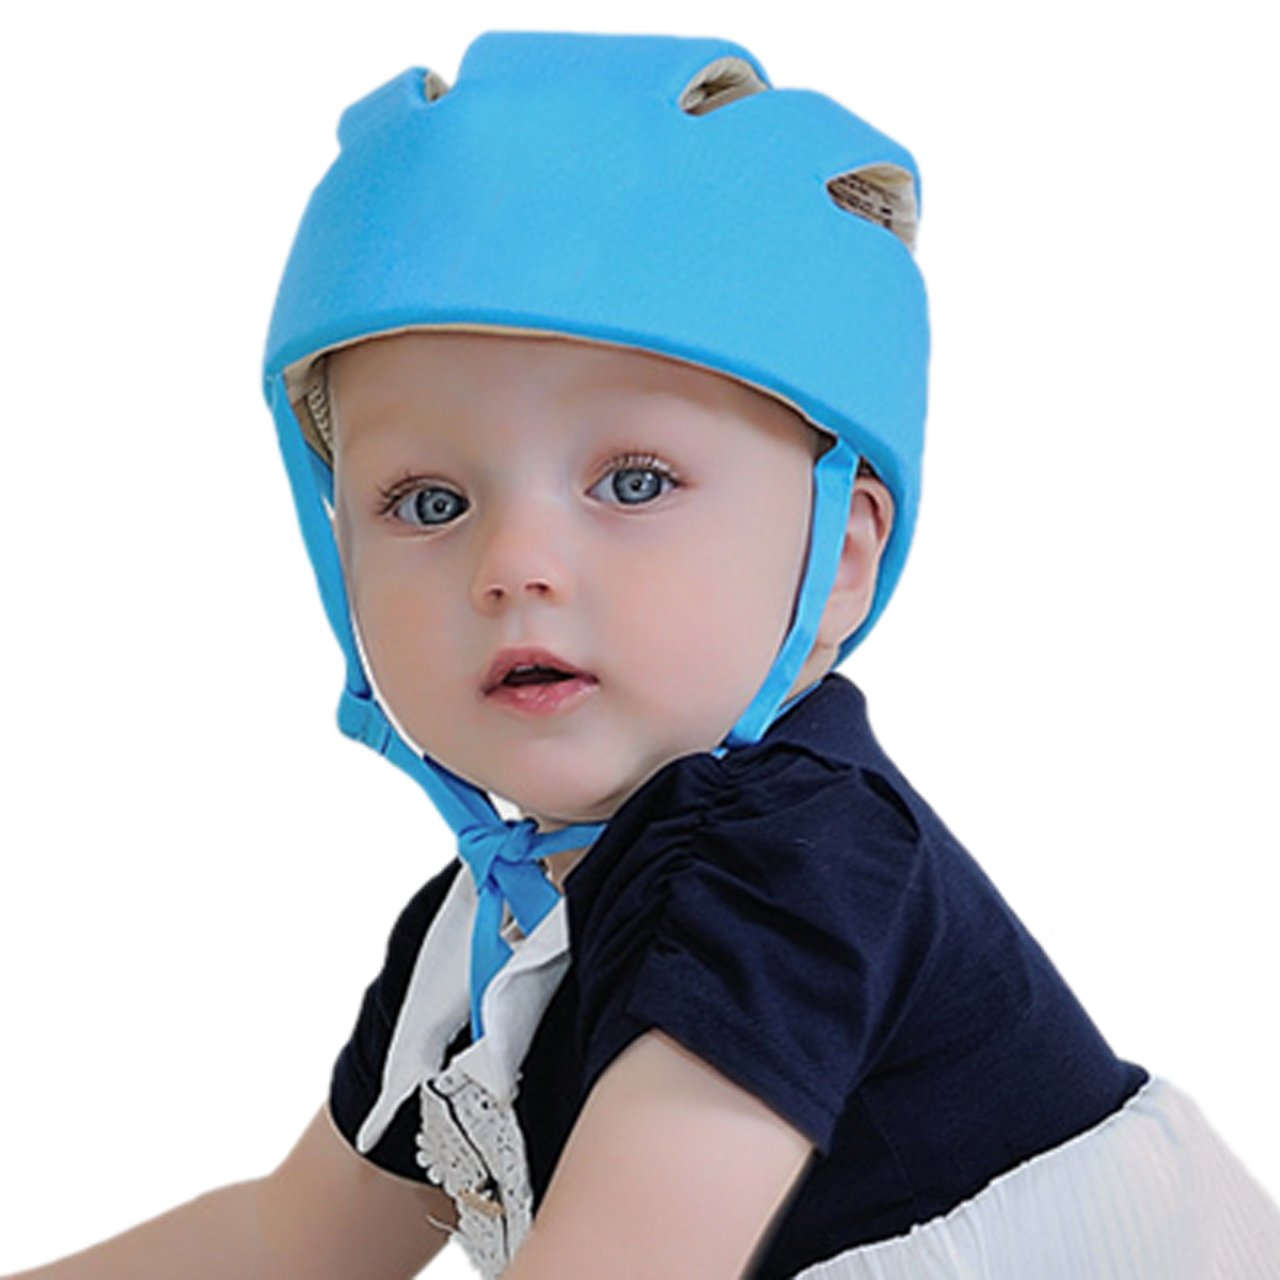 Infant Baby Toddler Safety Helmet Kids Head Protection Hat for Walking Play Blue